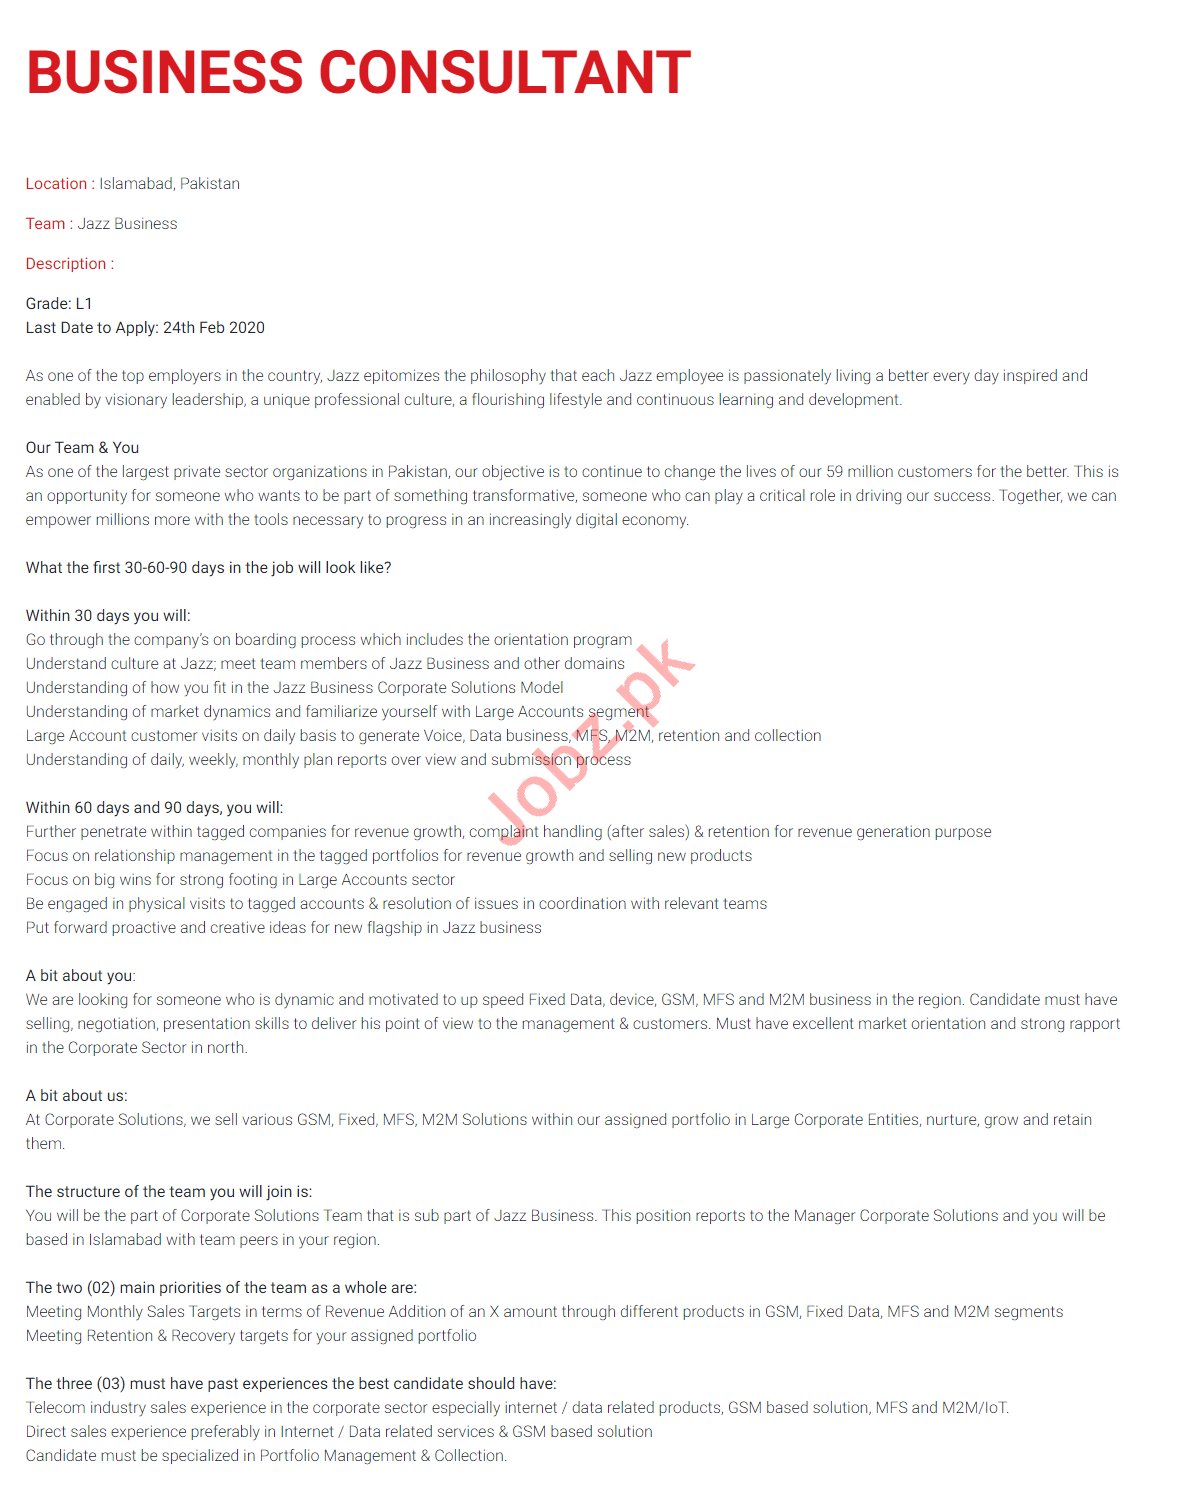 Business Consultant Jobs in Jazz Telecom